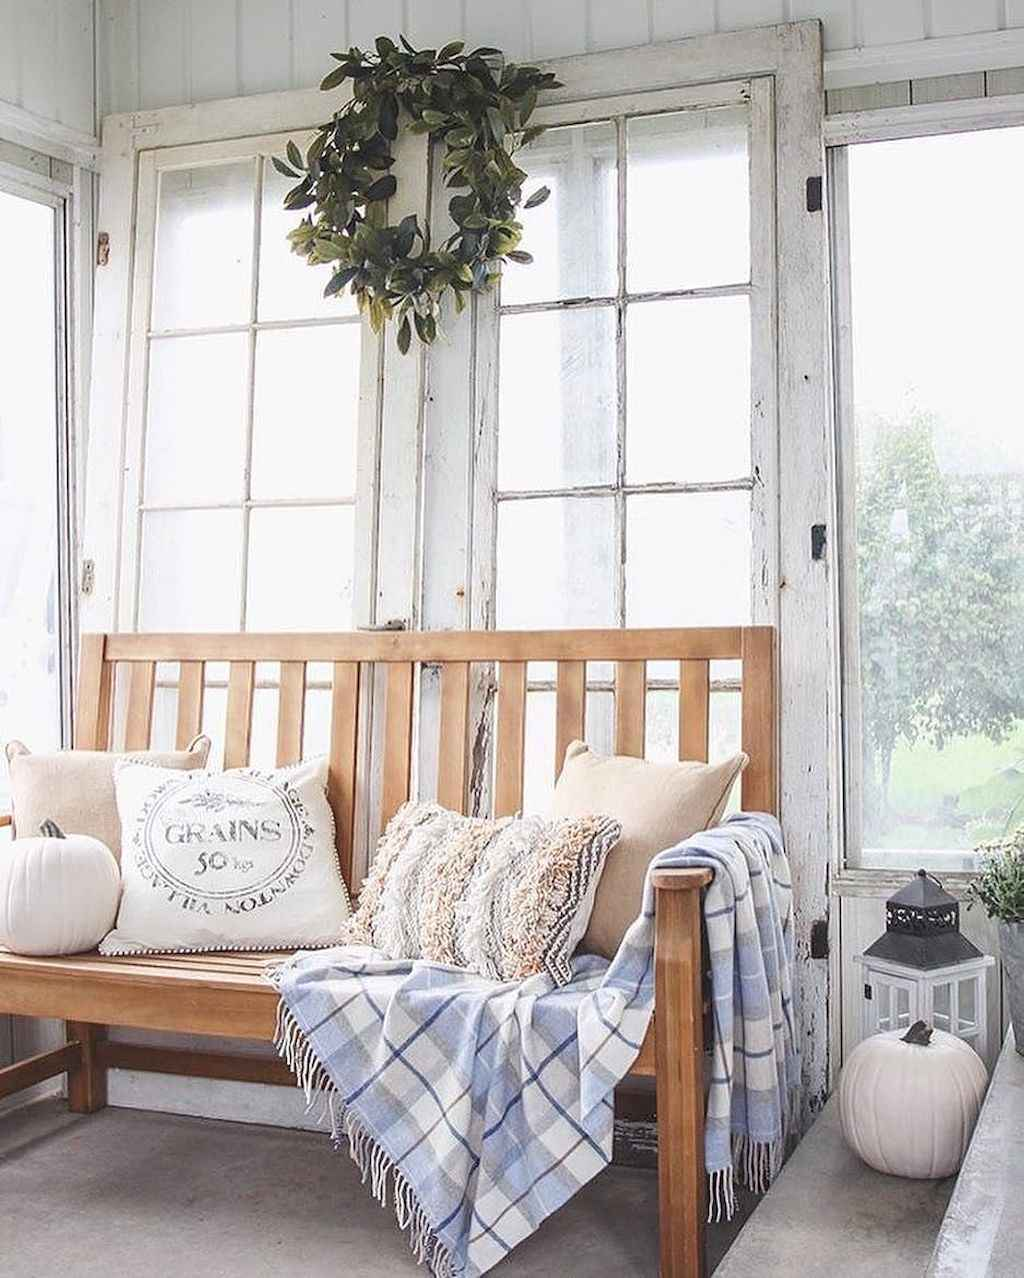 Cozy apartment decorating ideas on a budget (20)